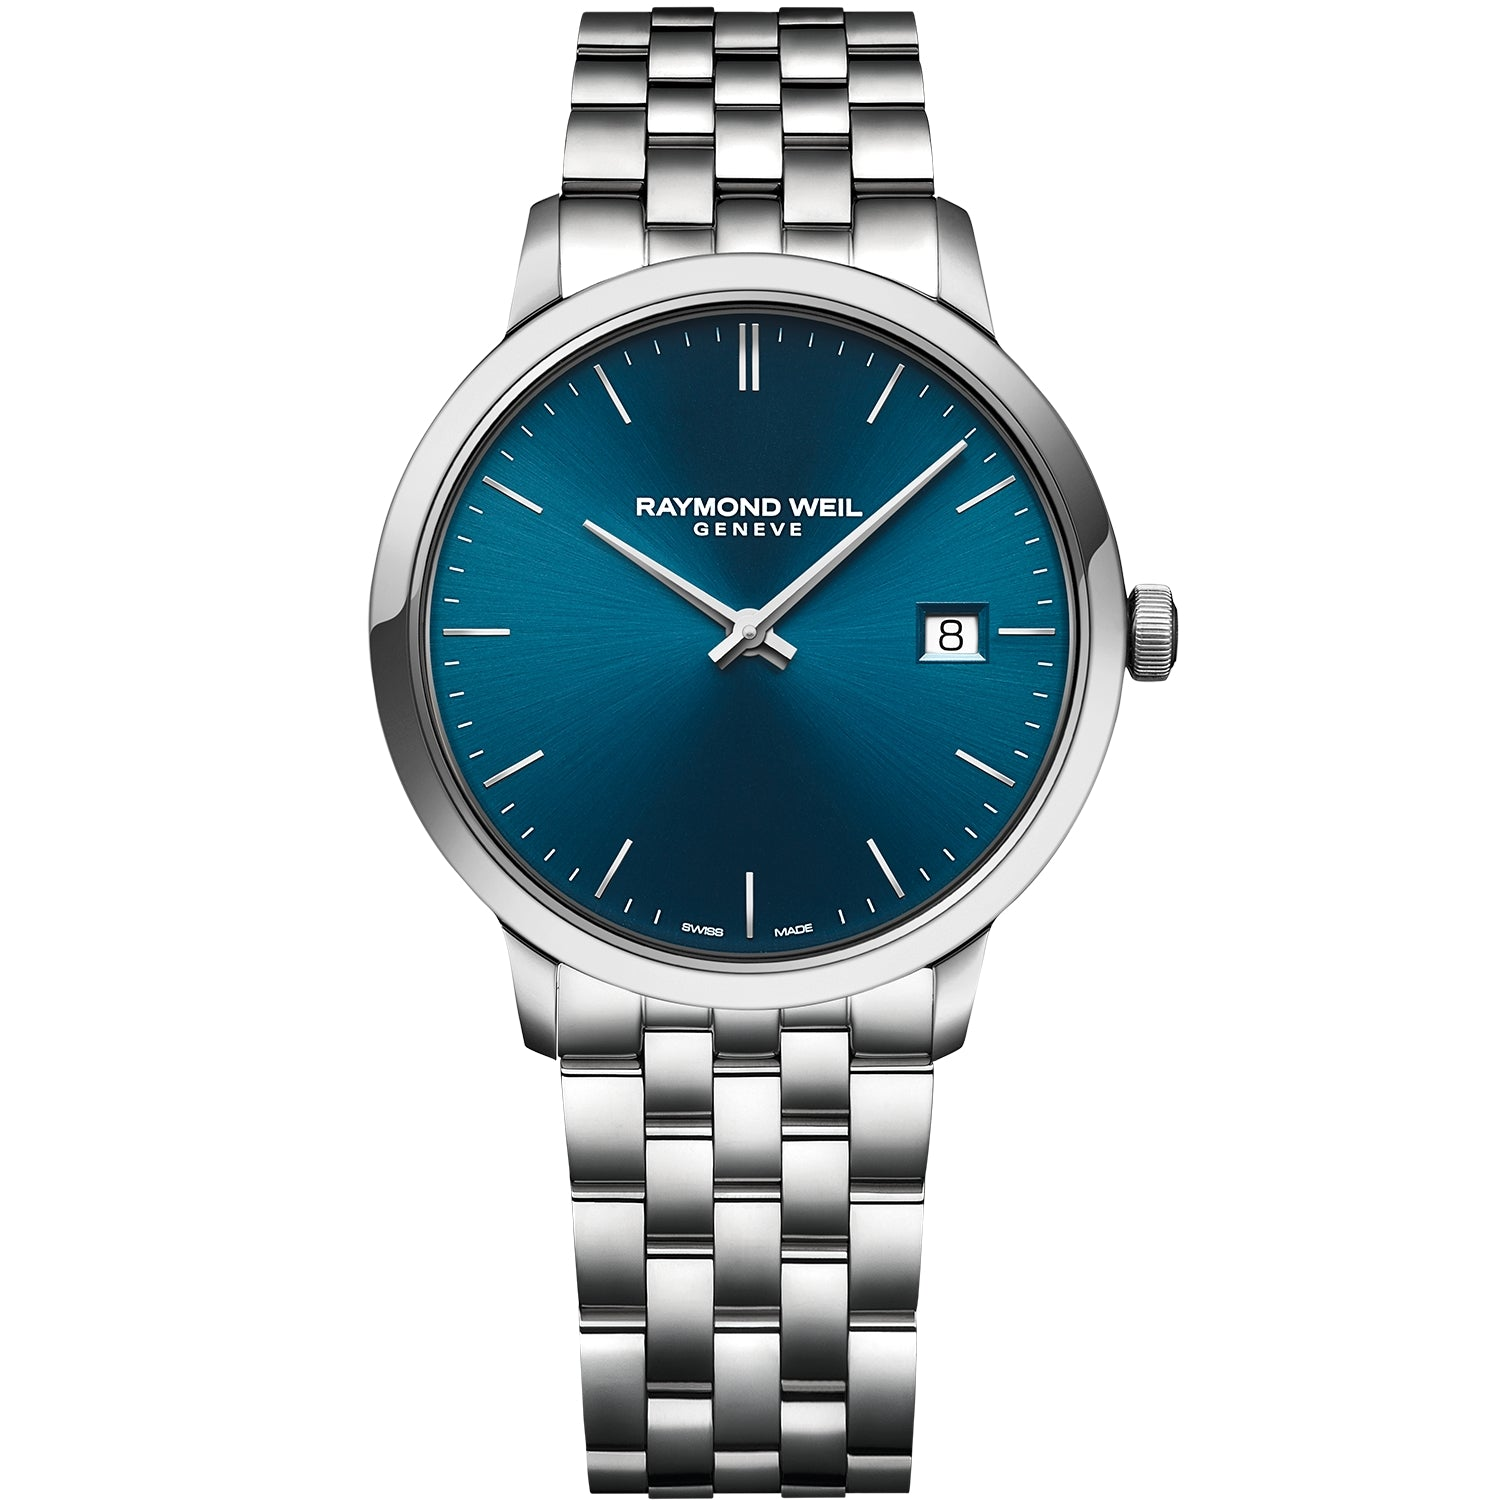 Toccata Men's Classic Steel Blue Dial Quartz Watch 5485-ST-50001